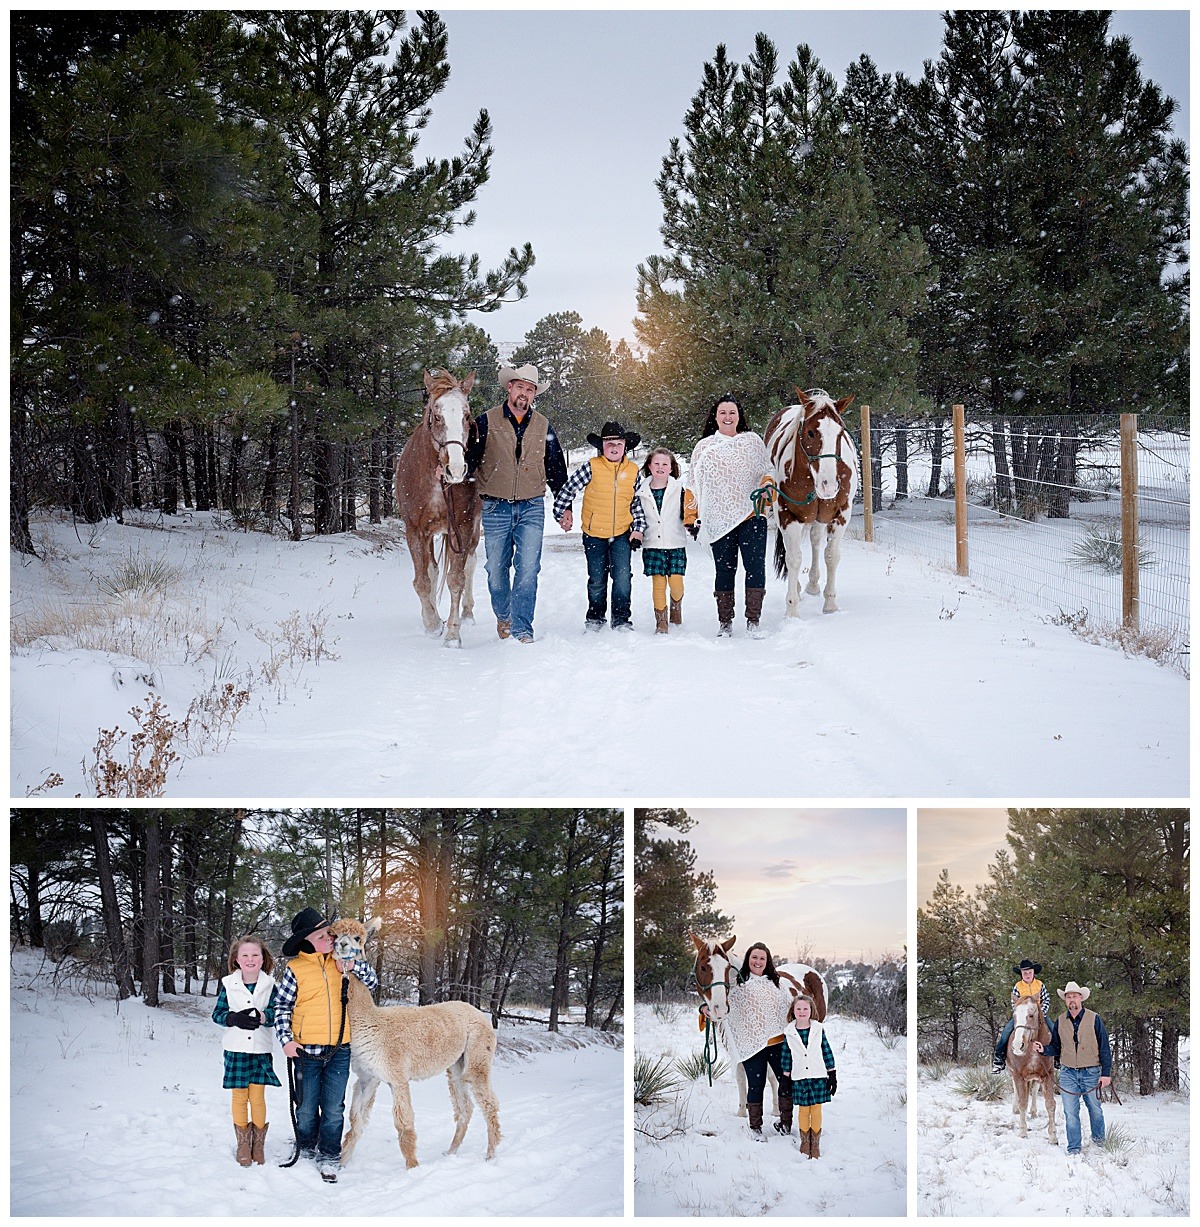 family-dog-photography-parker-denver-colorado-olson-1.jpg